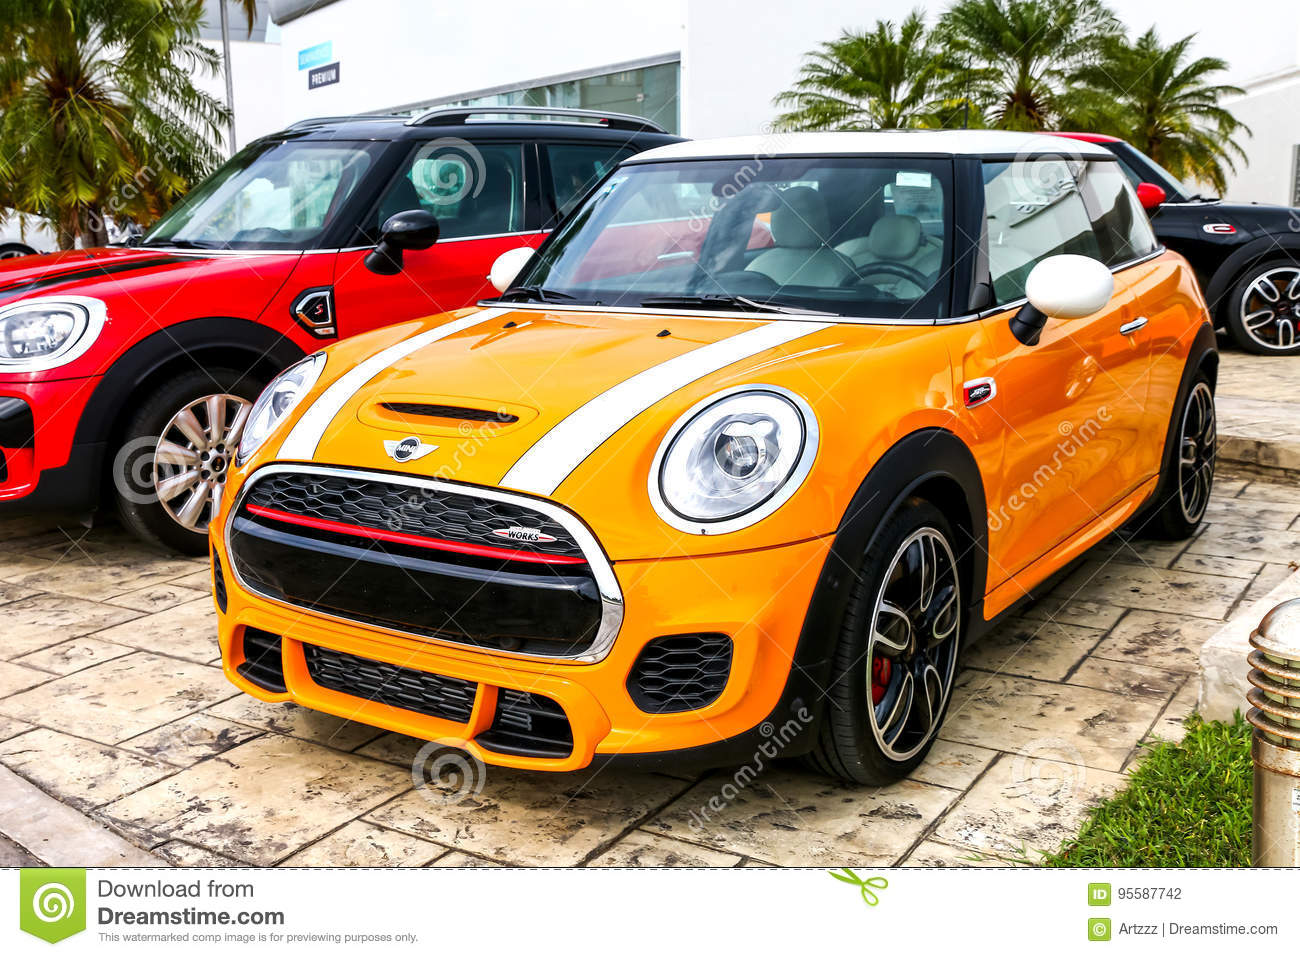 mini cooper editorial photography. image of modified - 95587742